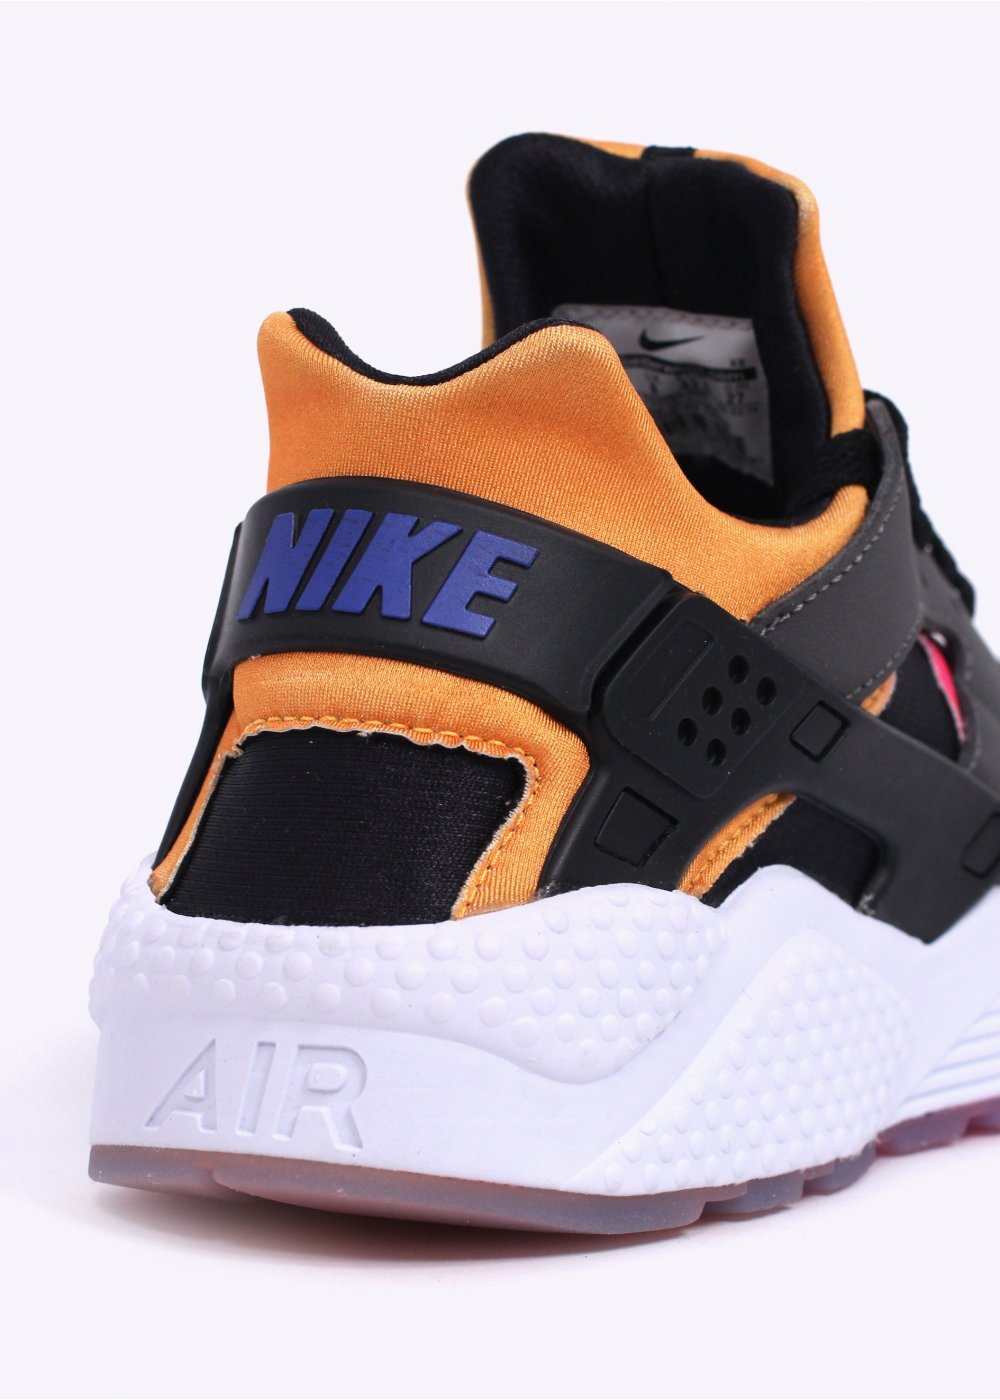 size 40 21c28 a5675 Nike Footwear Air Huarache Run 'Sunset Rainbow' SD Trainers - Black / Volt  / Tour Yellow / Pink